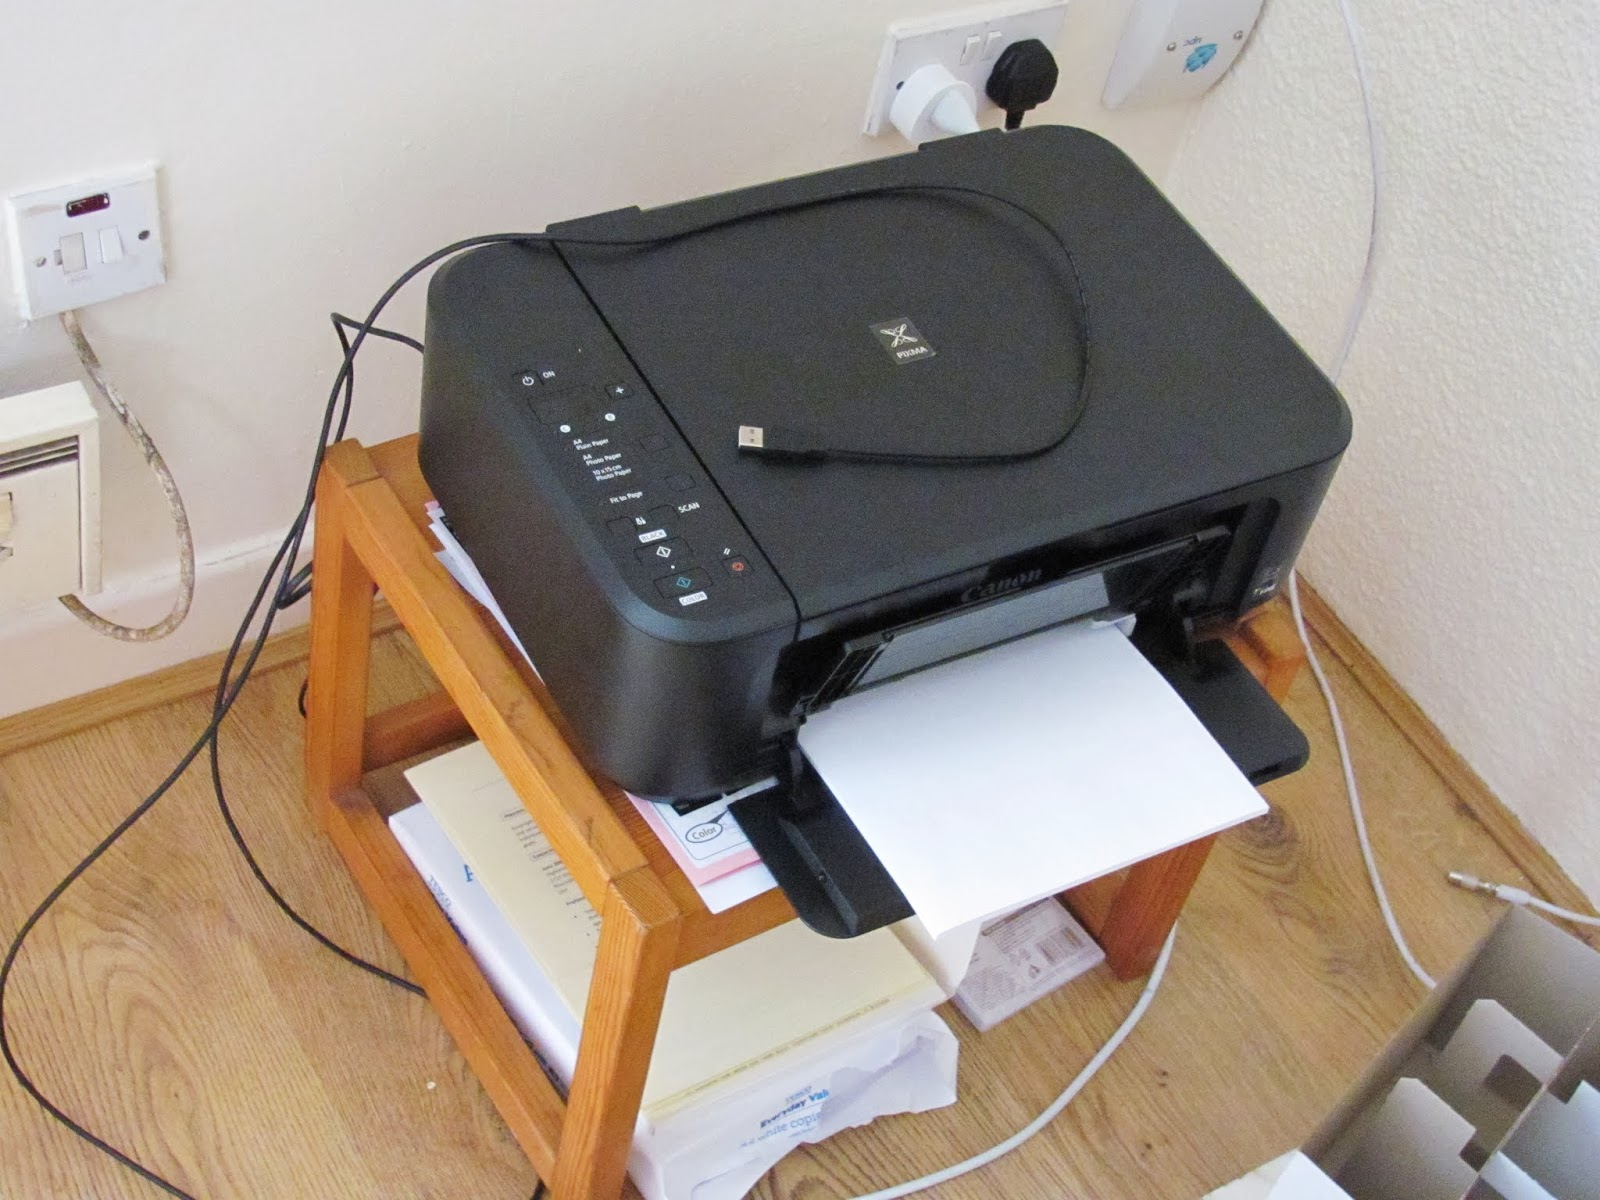 The printer, manuals, and printer paper on a footstool and the floor